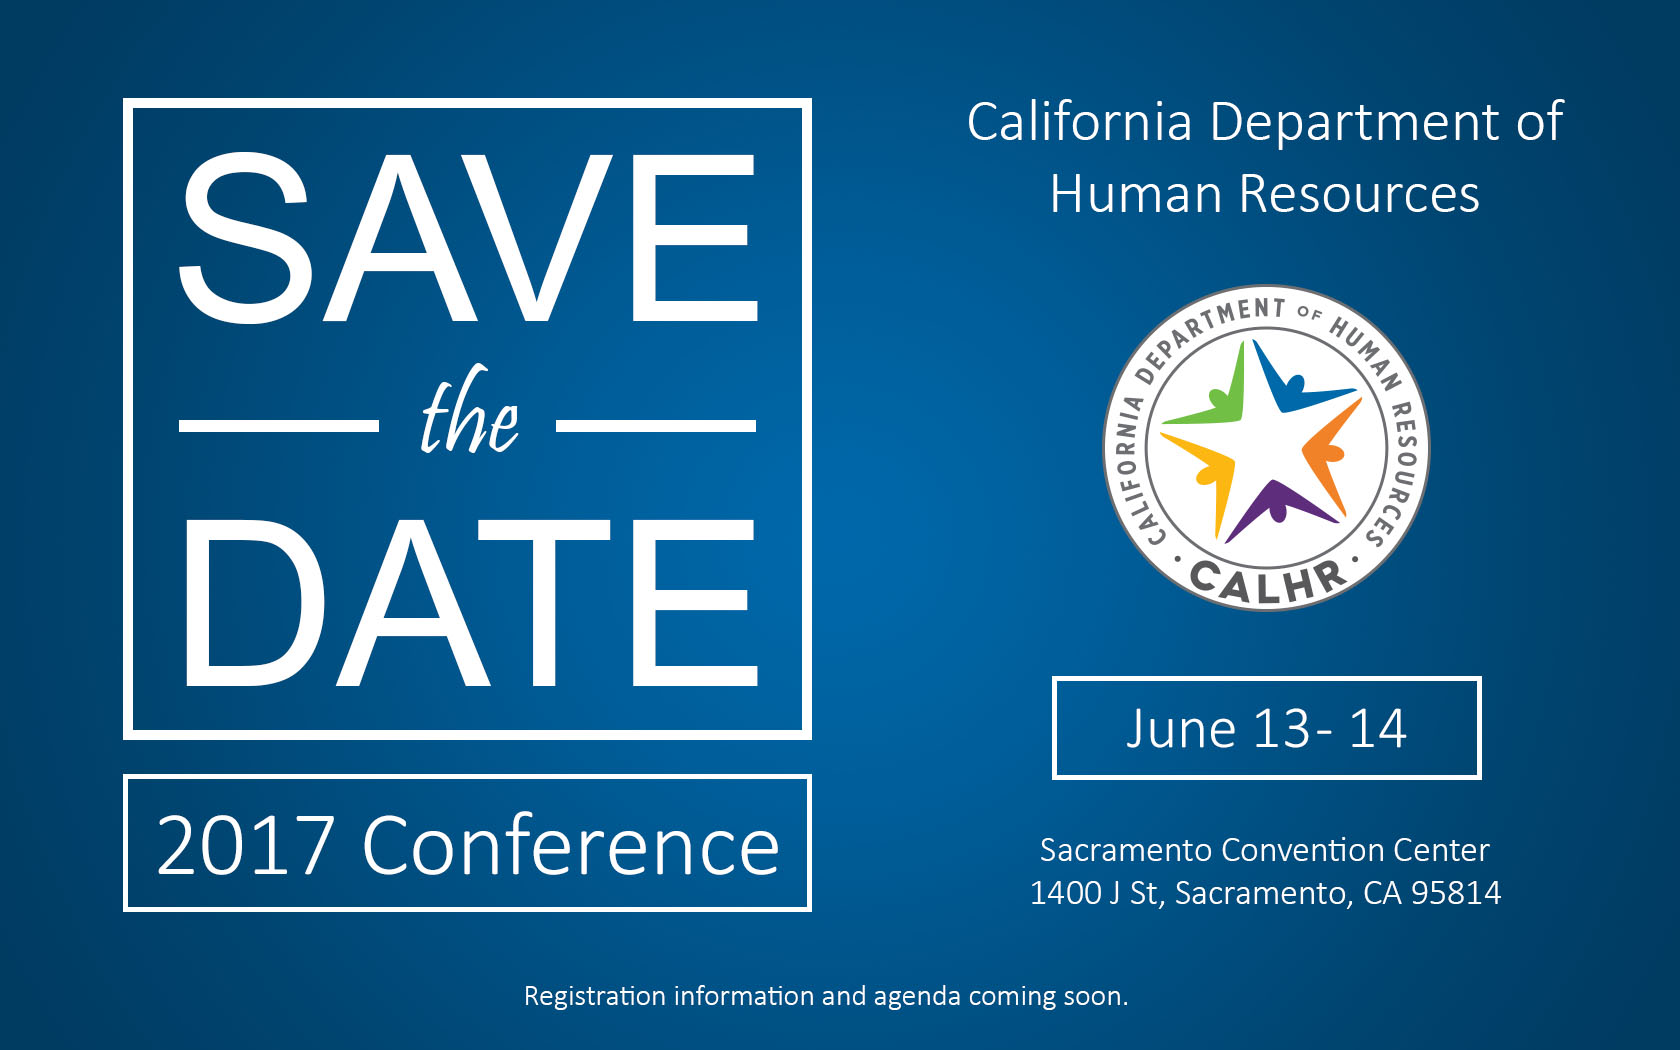 2017-calhr-conference-save-the-date.jpg